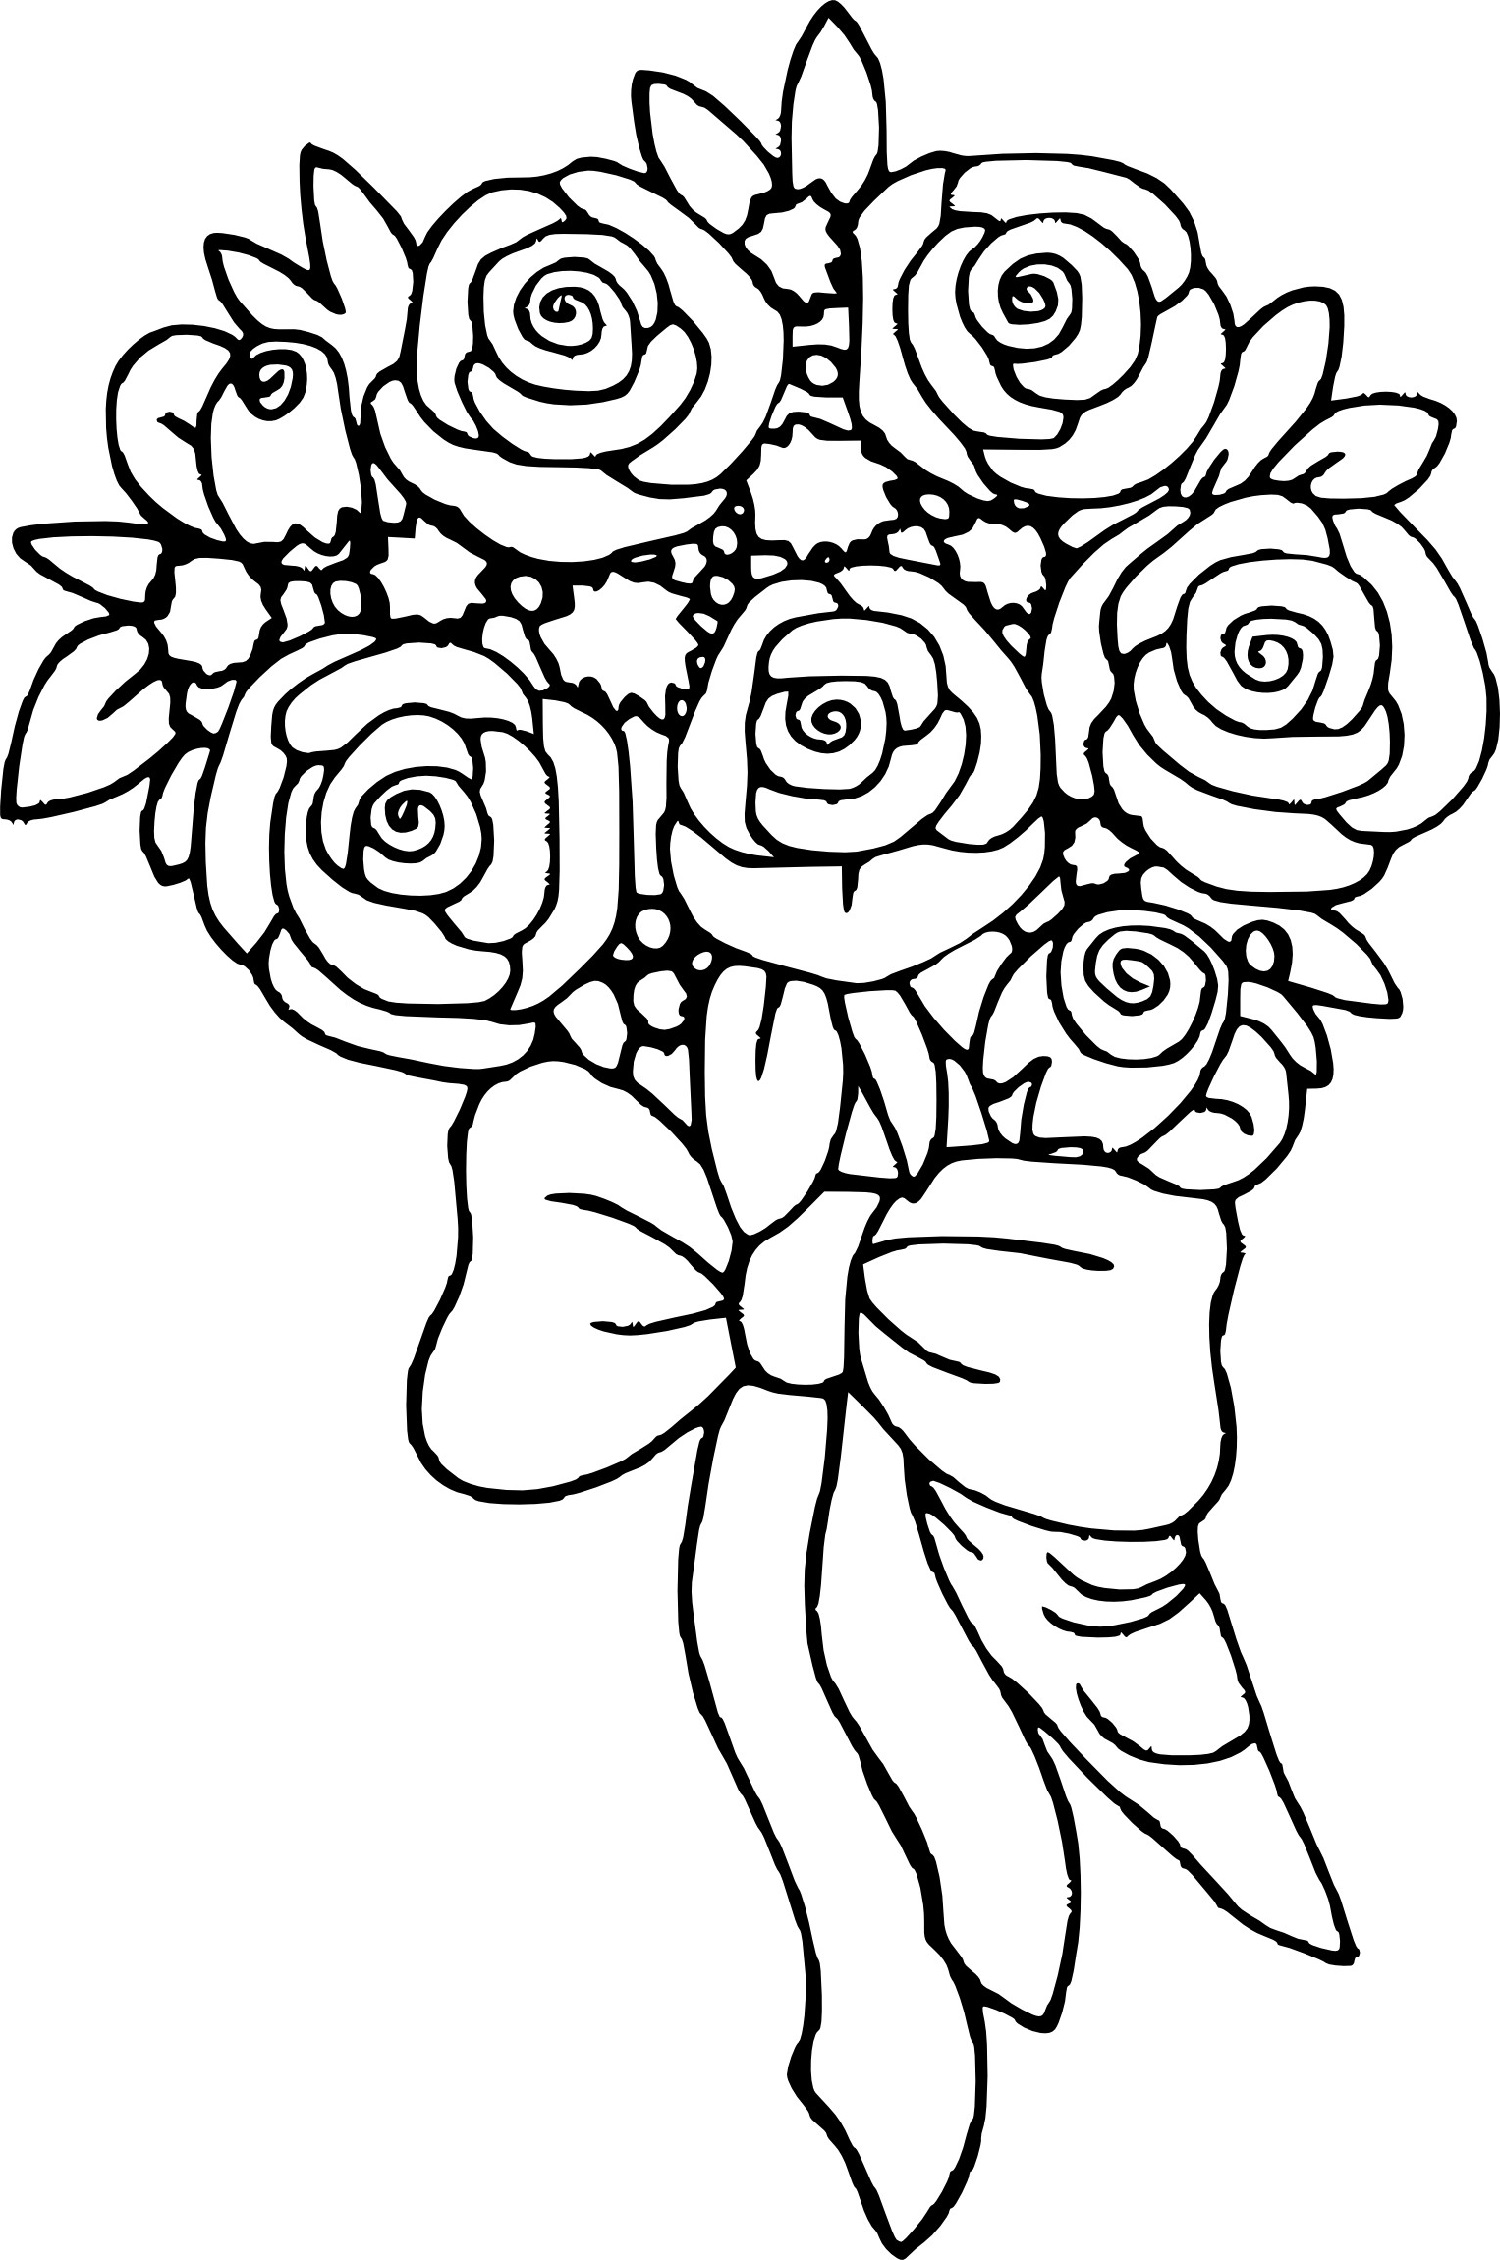 rose colouring pages rose coloring pages realistic 101 coloring rose pages colouring